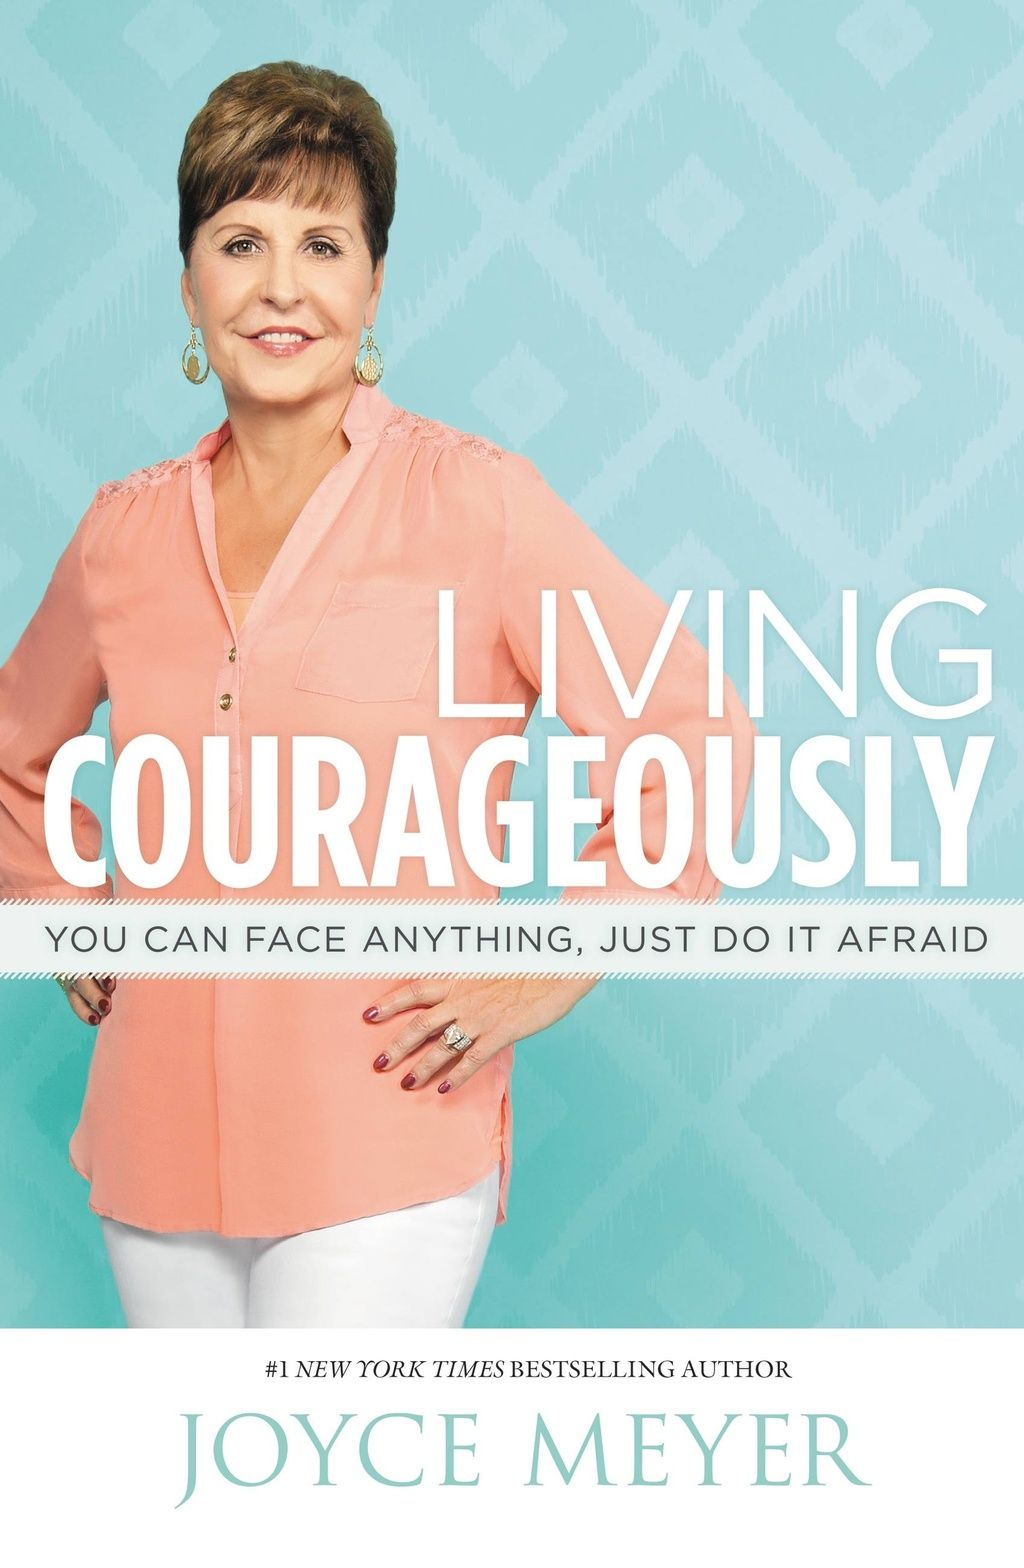 In living courageously joyce meyer explains how as